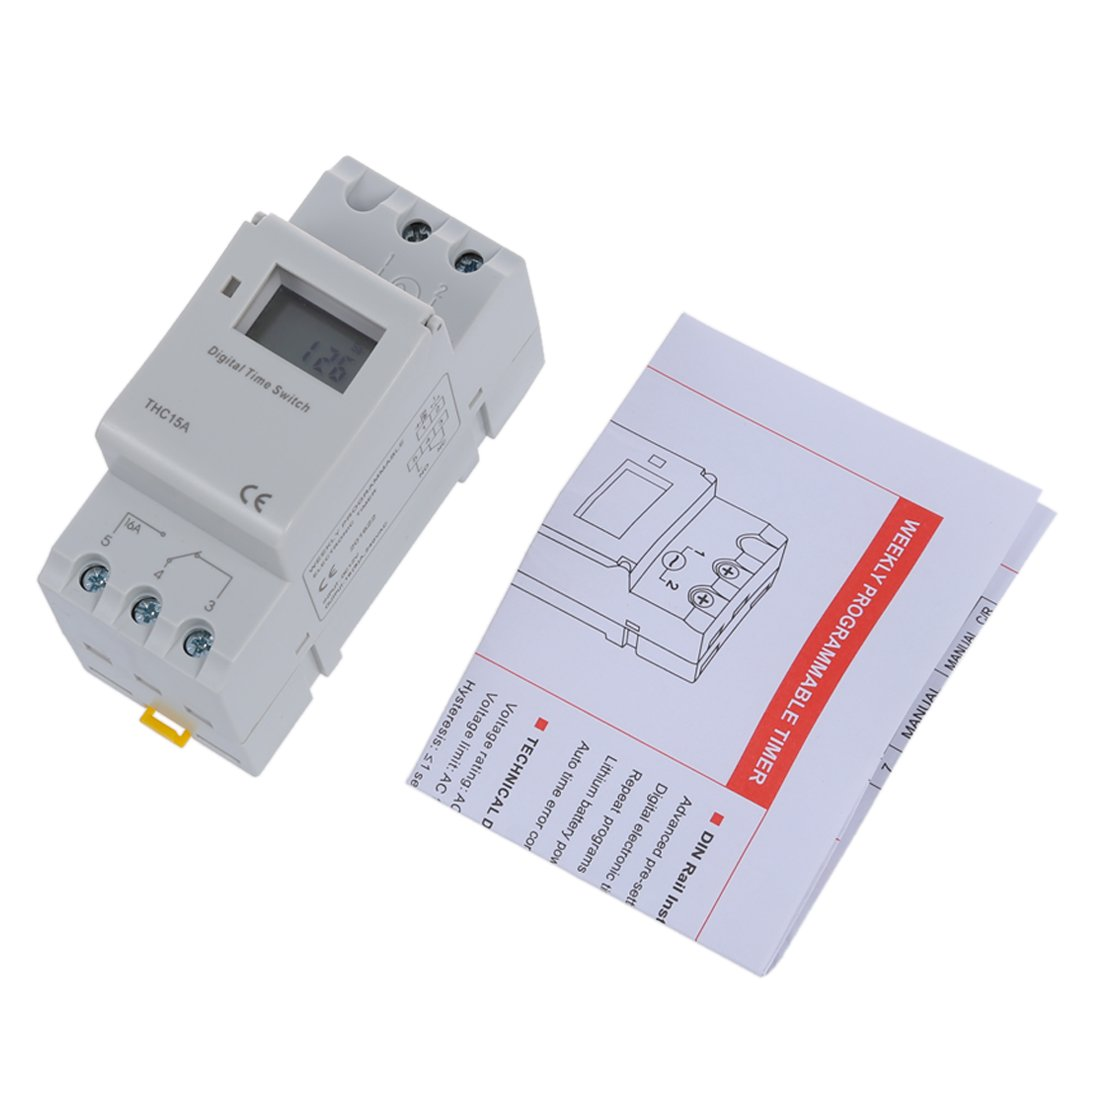 Programmable Timer Sodial Din Rail Time Relay Switch Circuit Electronics